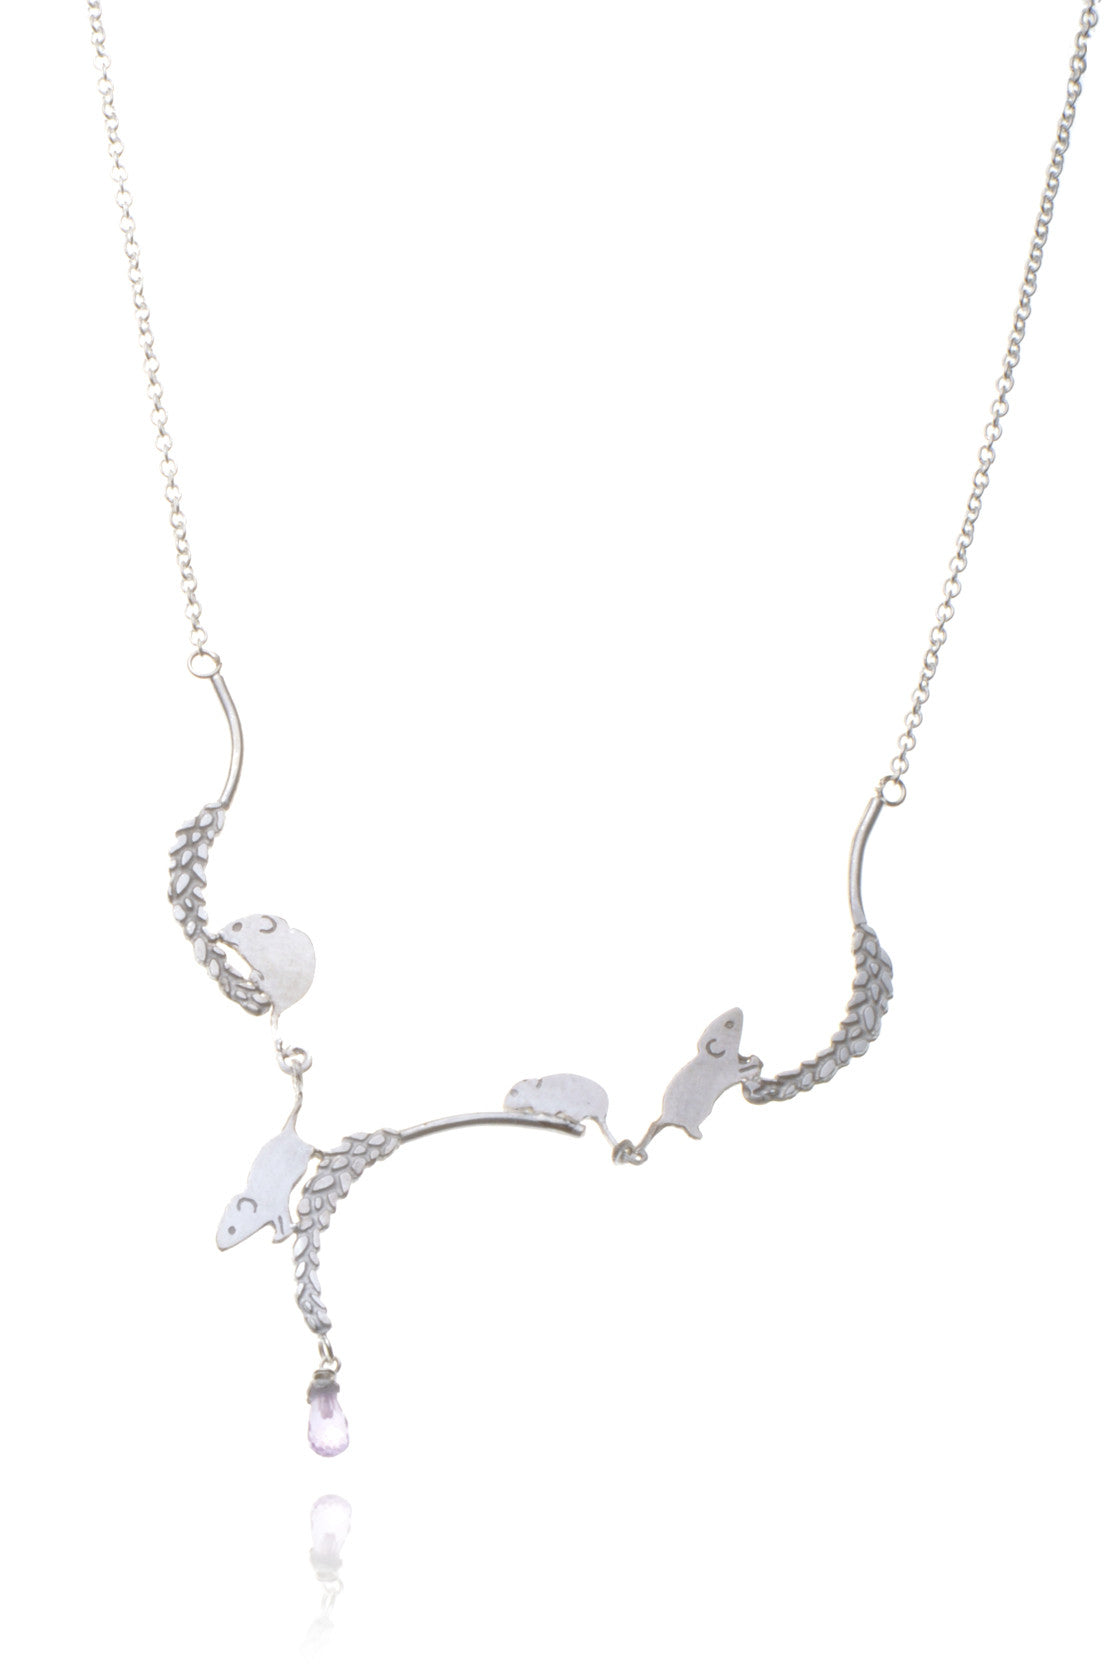 Playful Field mouse necklace